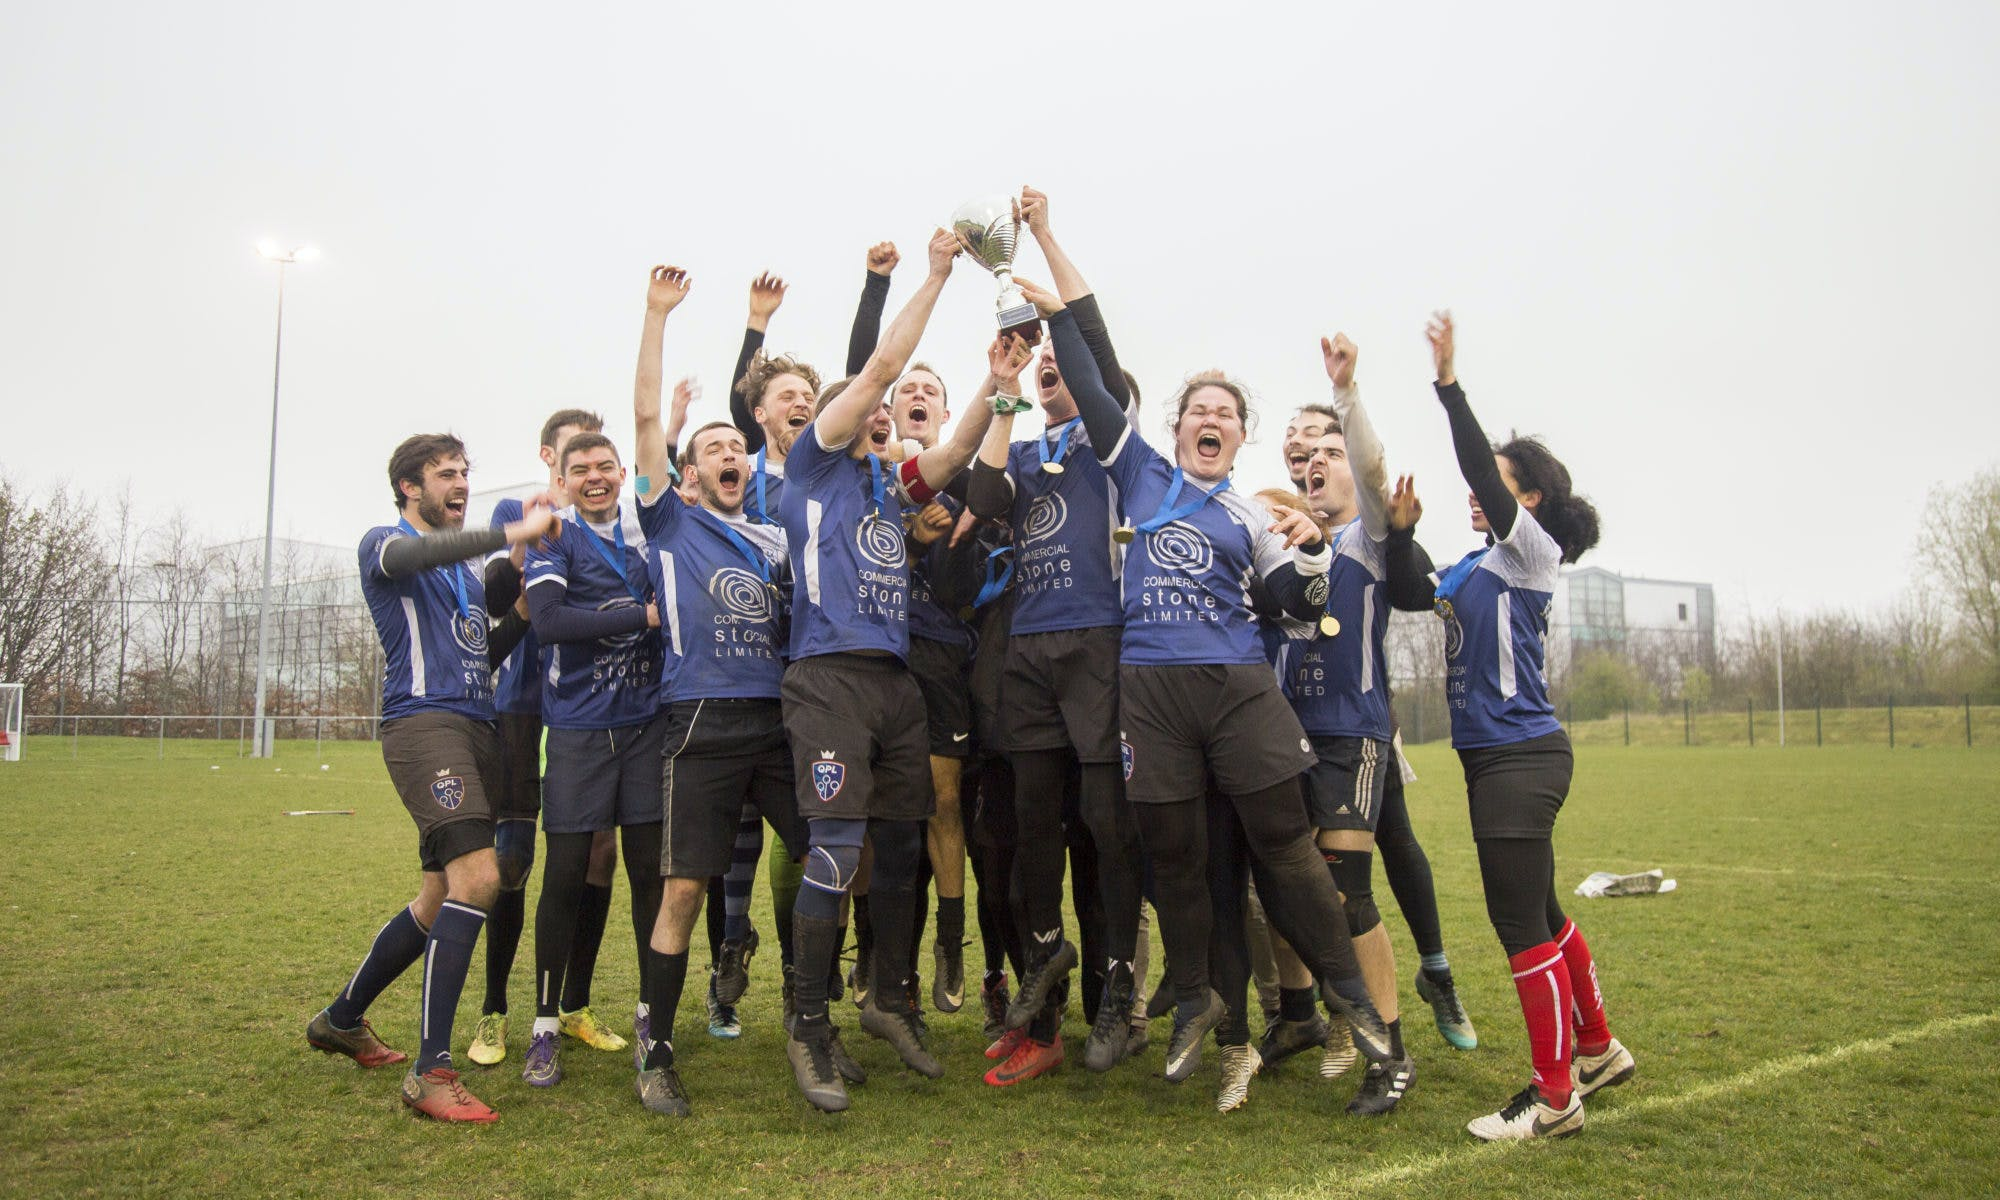 London Quidditch Club celebrate their BQC win by raising the trophy